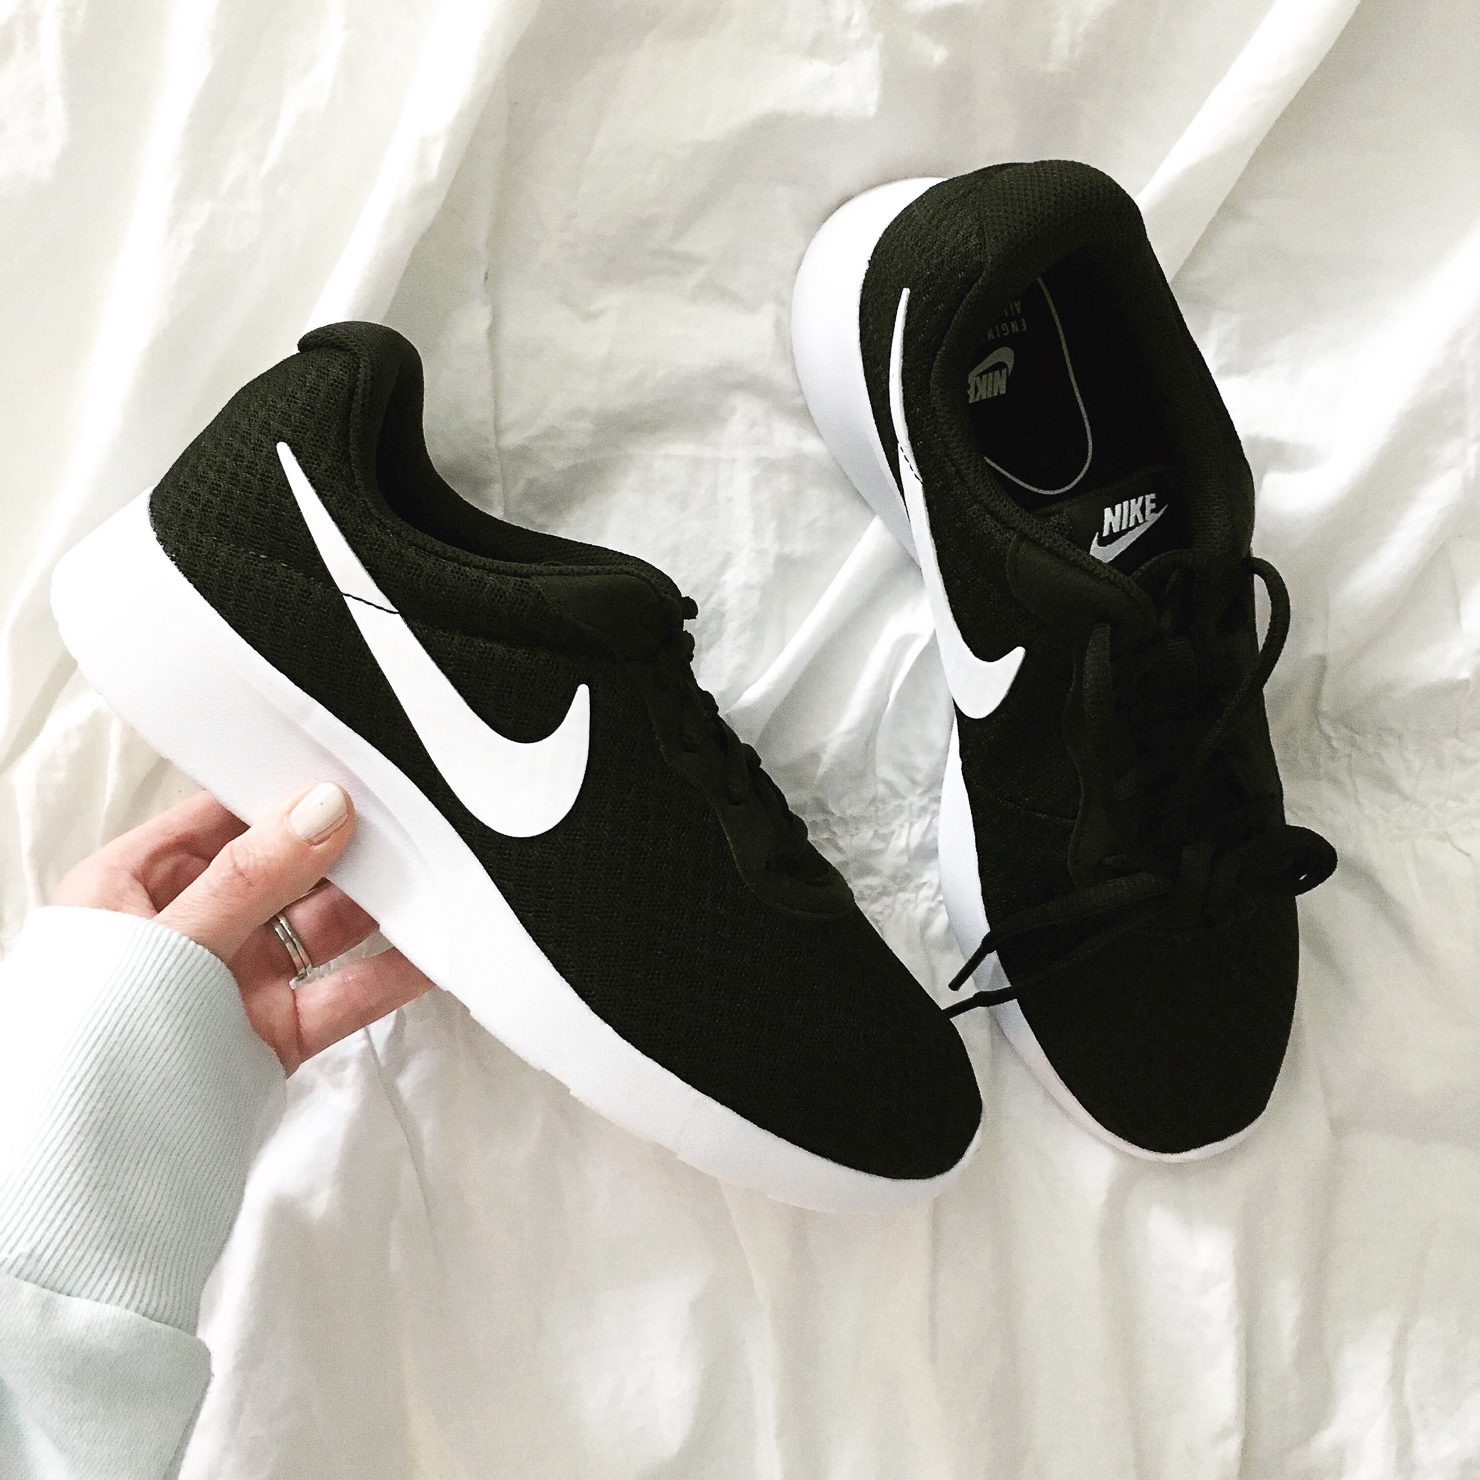 instagram-spring-2017-how-to-shop-my-instagram-with-like-to-know-it-screenshot-nikes